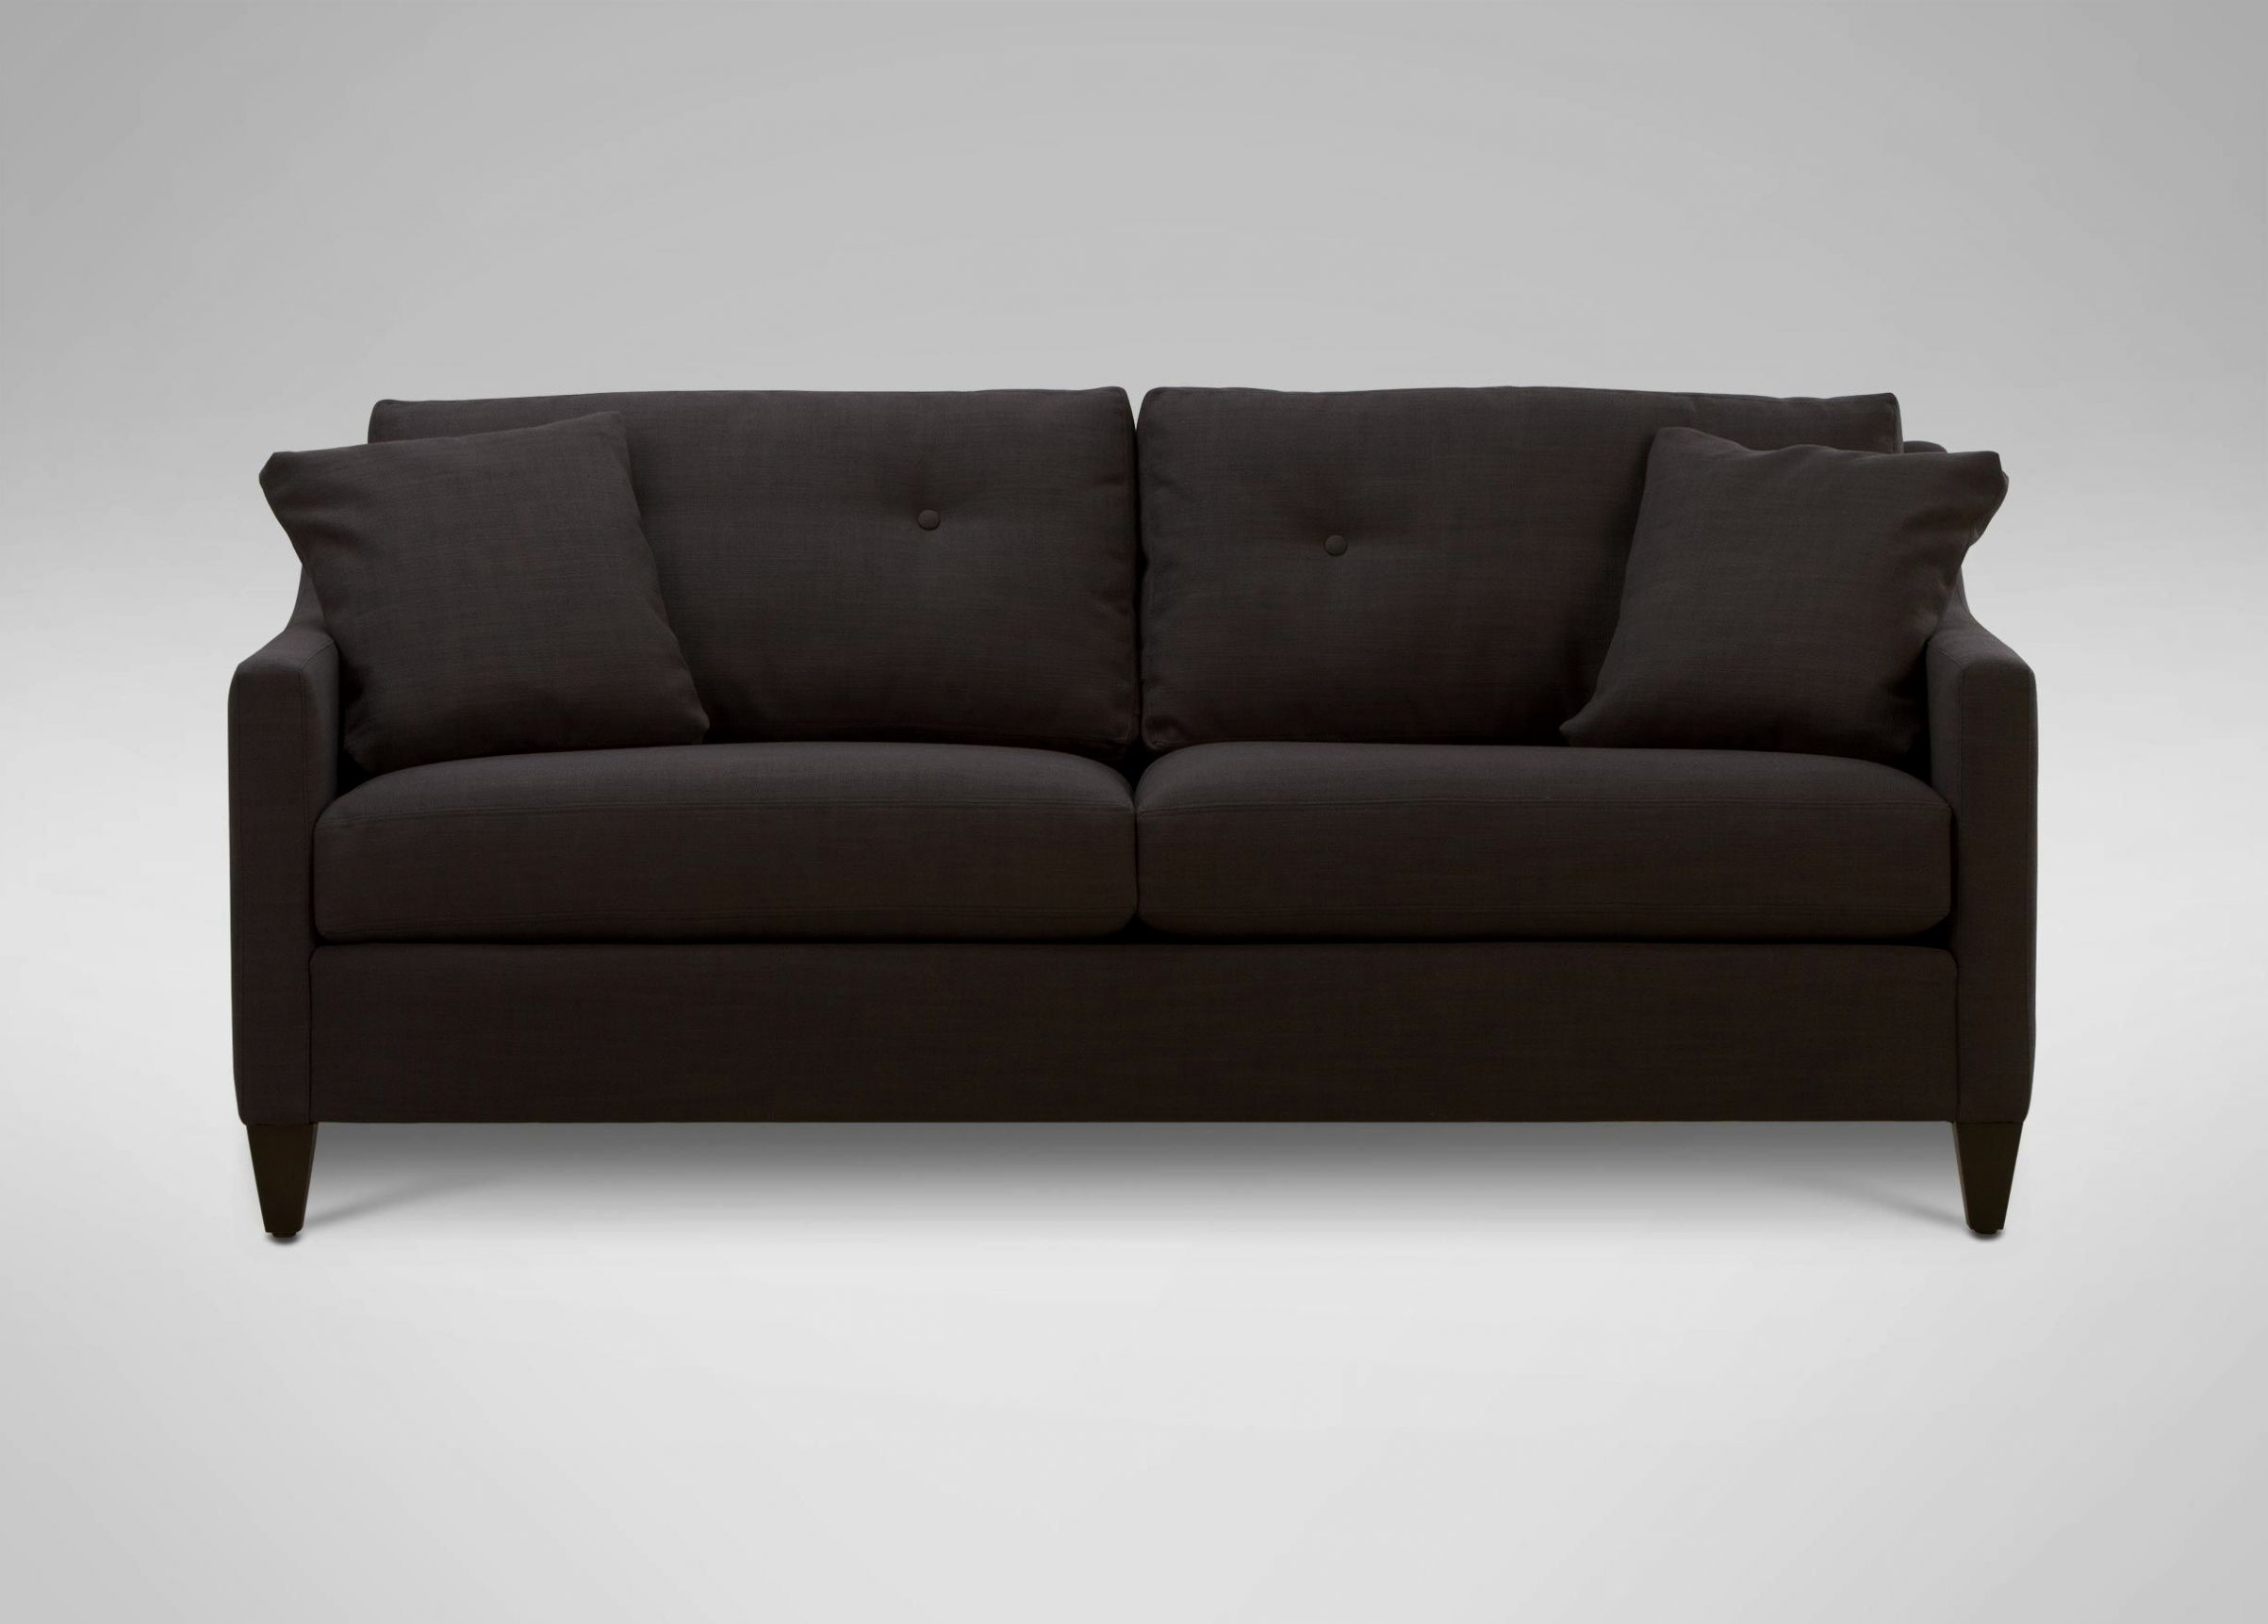 Lovely 200 Sofas Idea #4 Cheap Sectional Sofas Under 200 15 With Inside Sectional Sofas Under (View 2 of 10)